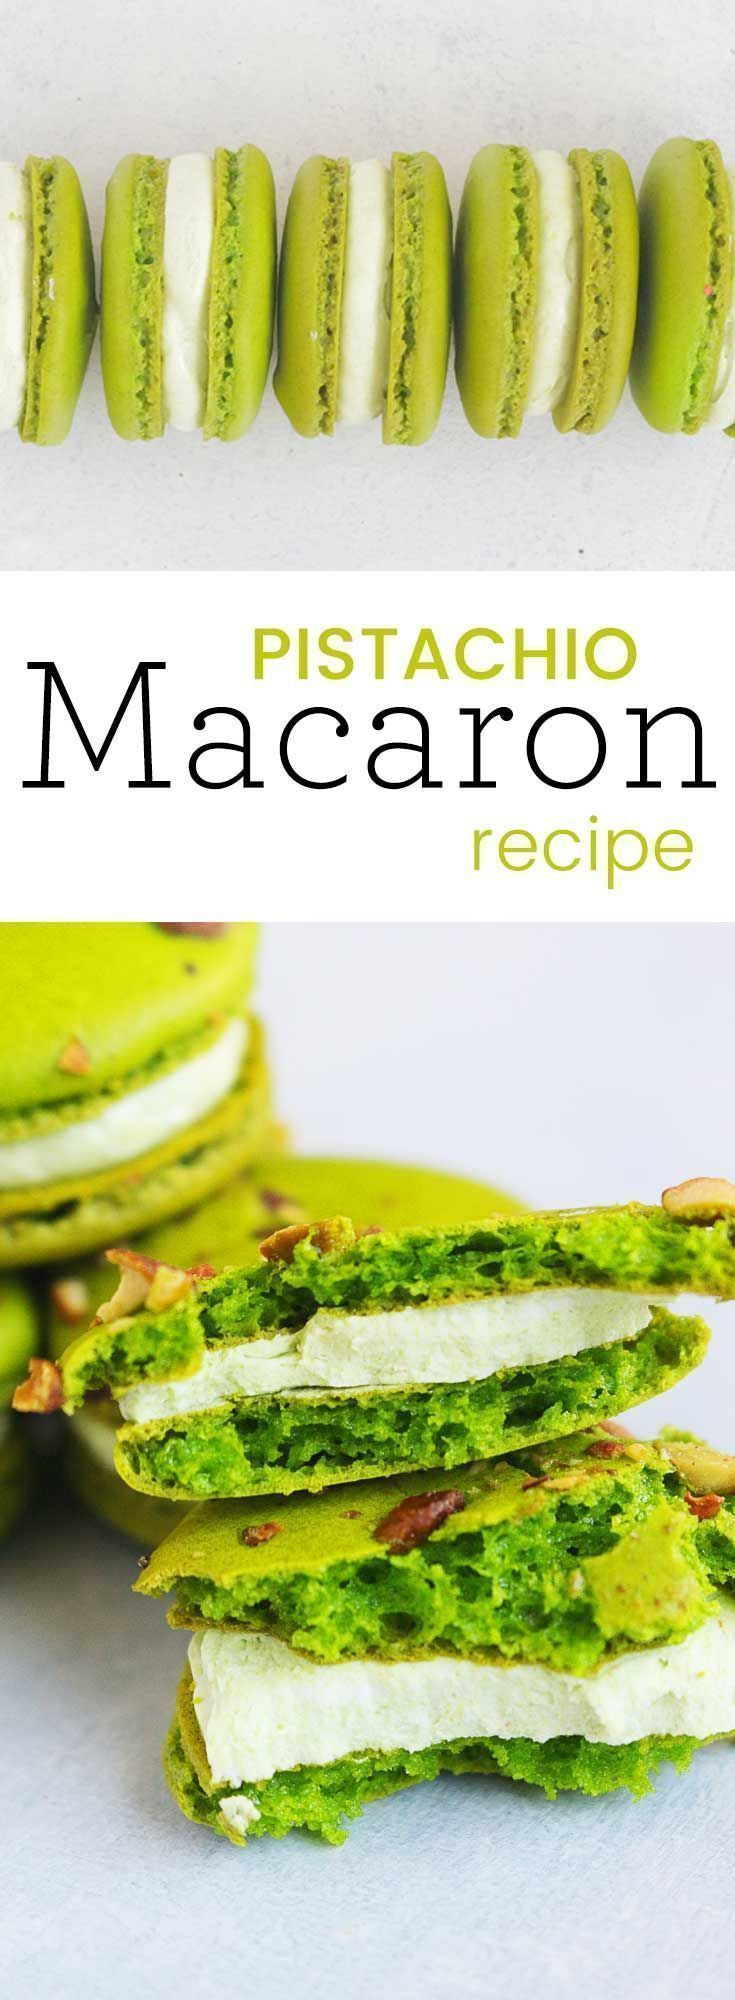 Pistachio macarons with Pistachio buttercream are easily my most favorite macaron flavor. They are classic, rich, and rather pretty to look at. Use the Swiss Meringue Buttercream included or a pistachio nut butter to fill. #macarons #dessert